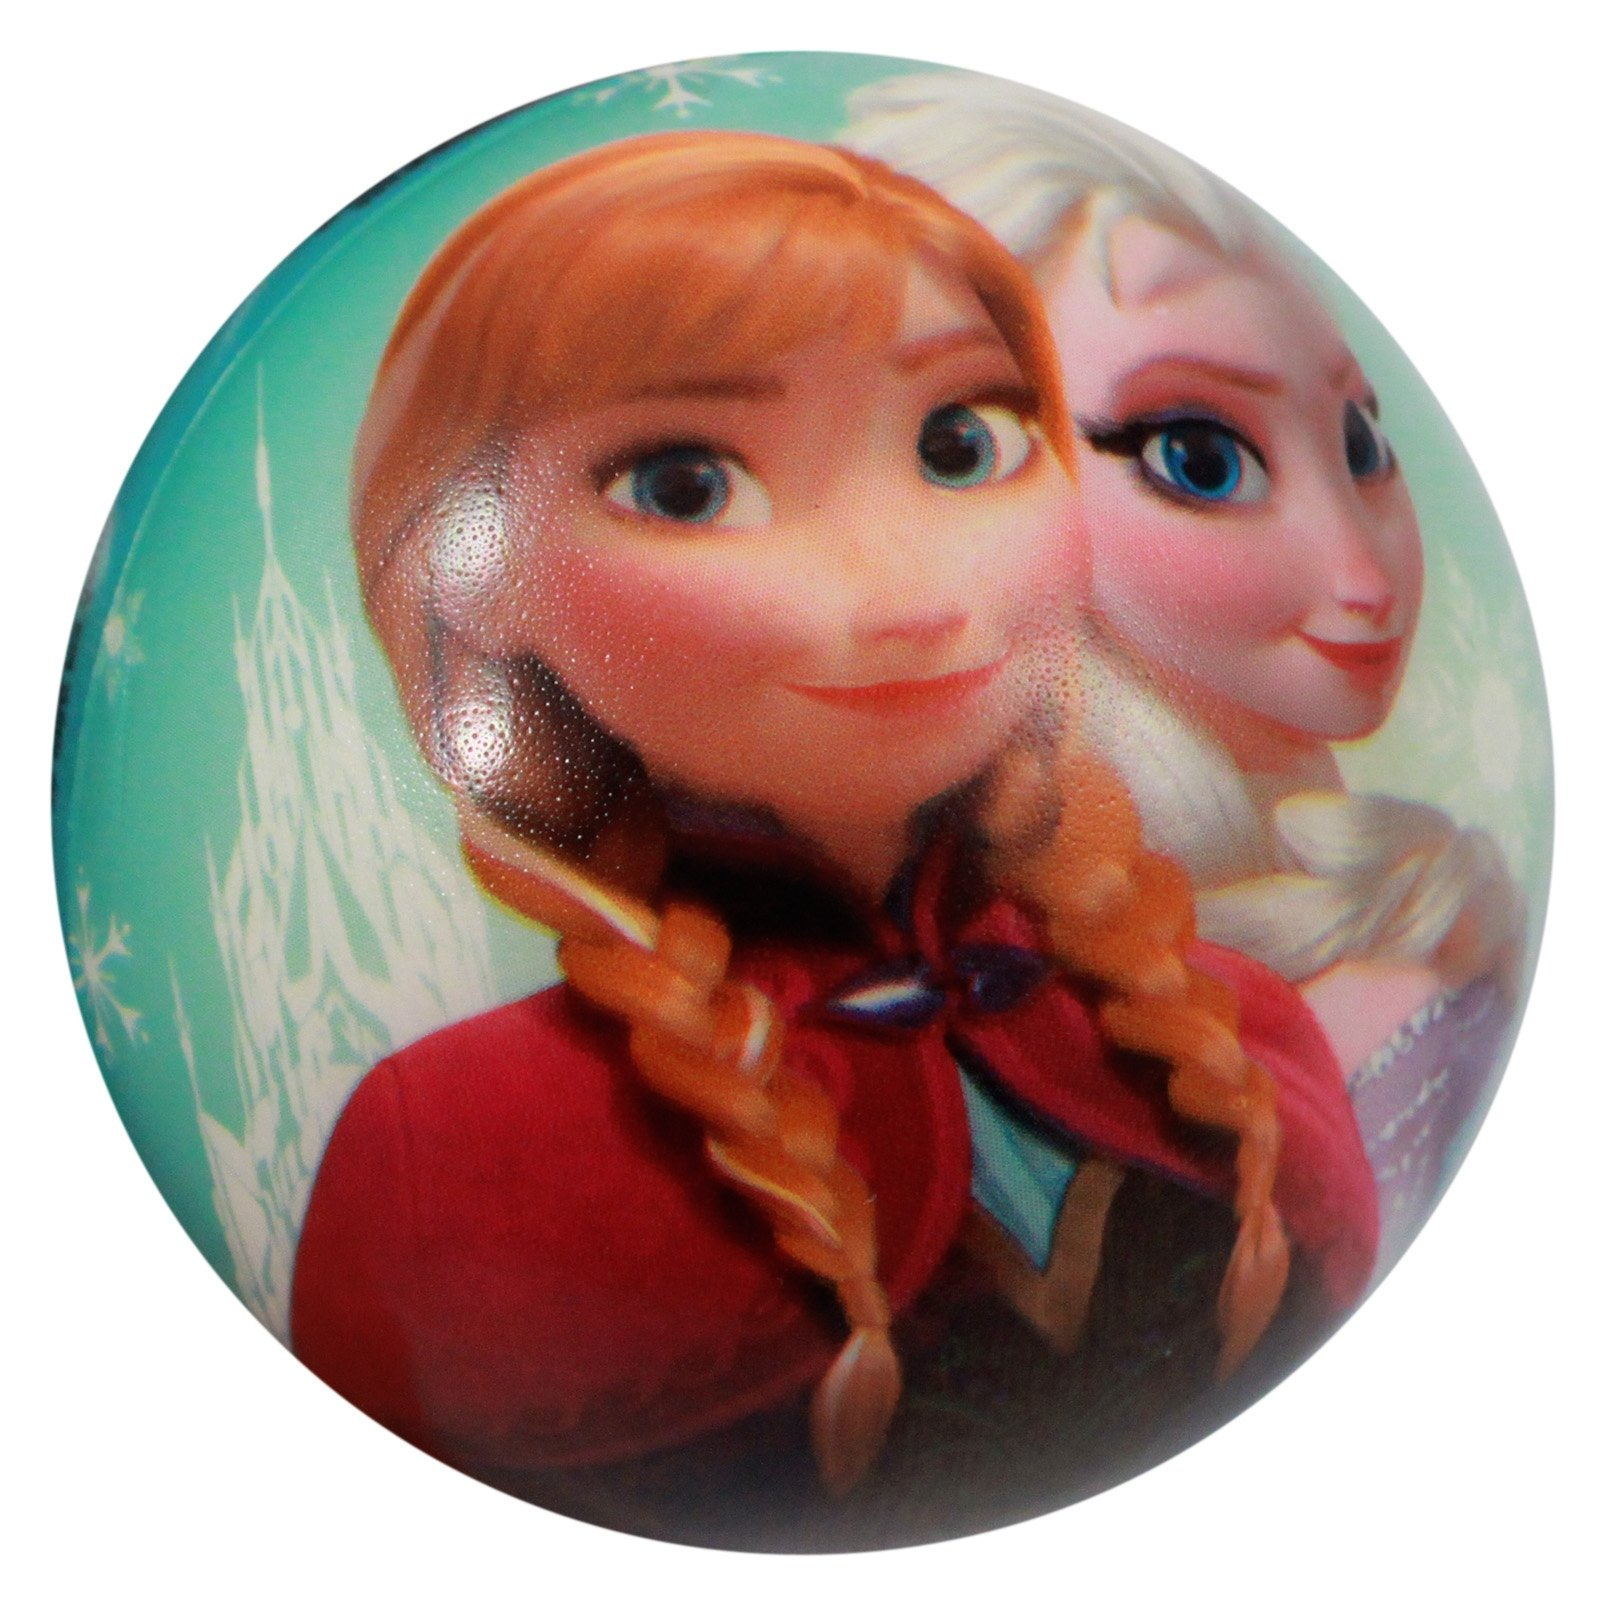 Disney Frozen Anna and Elsa Girls Foam Bouncy Ball Indoor Play Toy